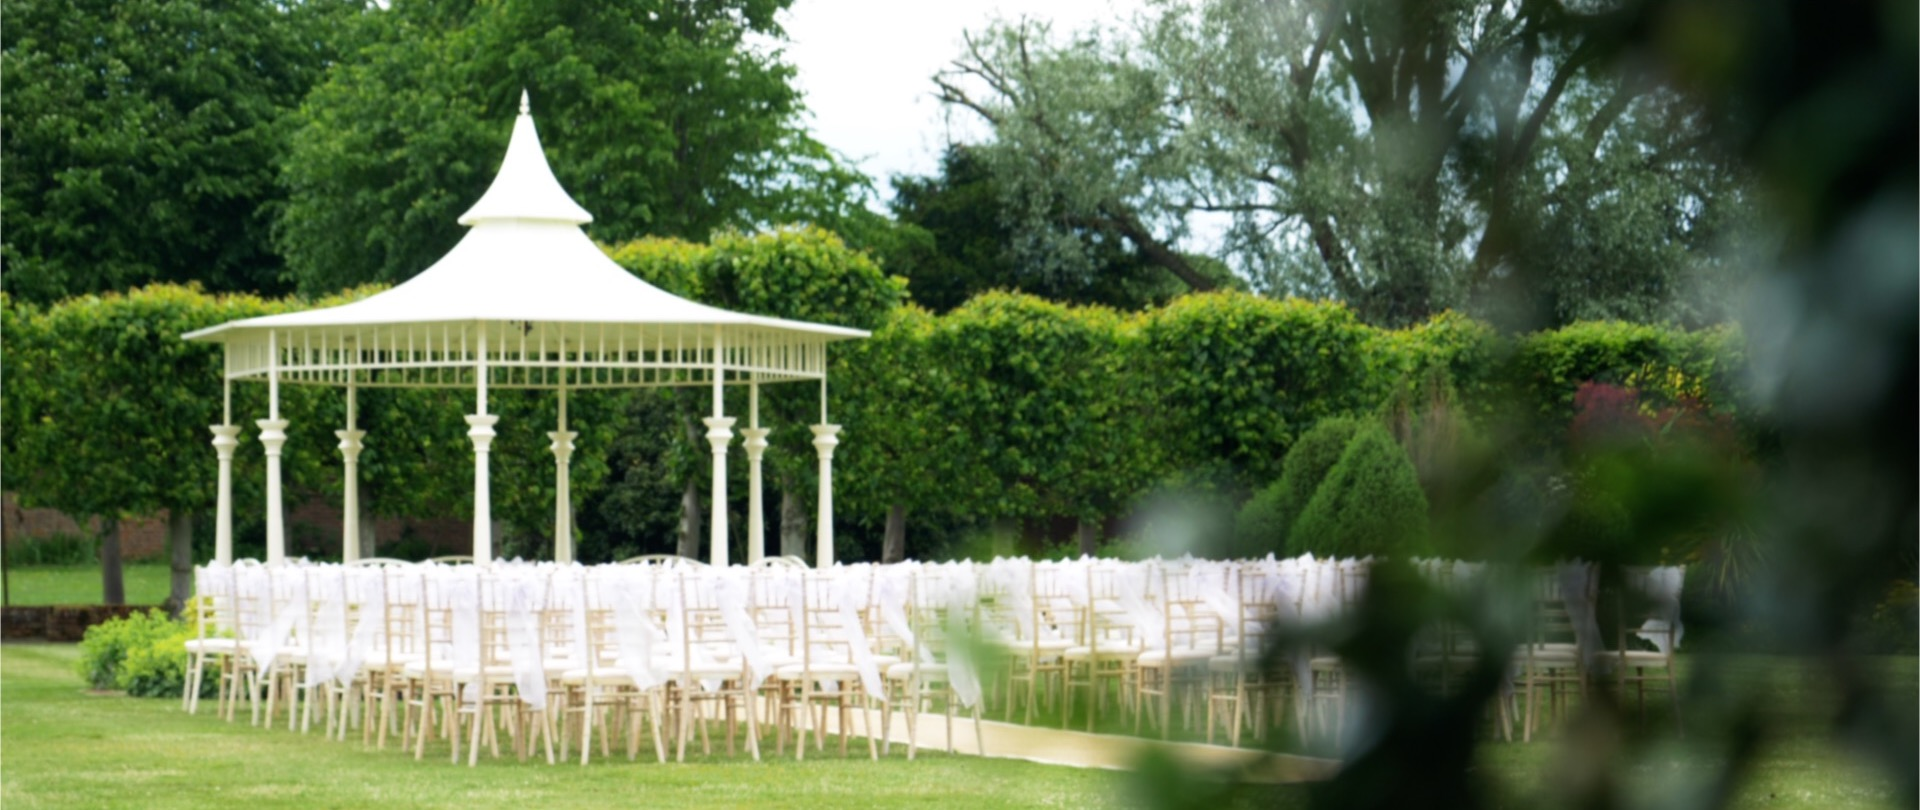 Quendon Hall Outside Ceremony Video.jpg